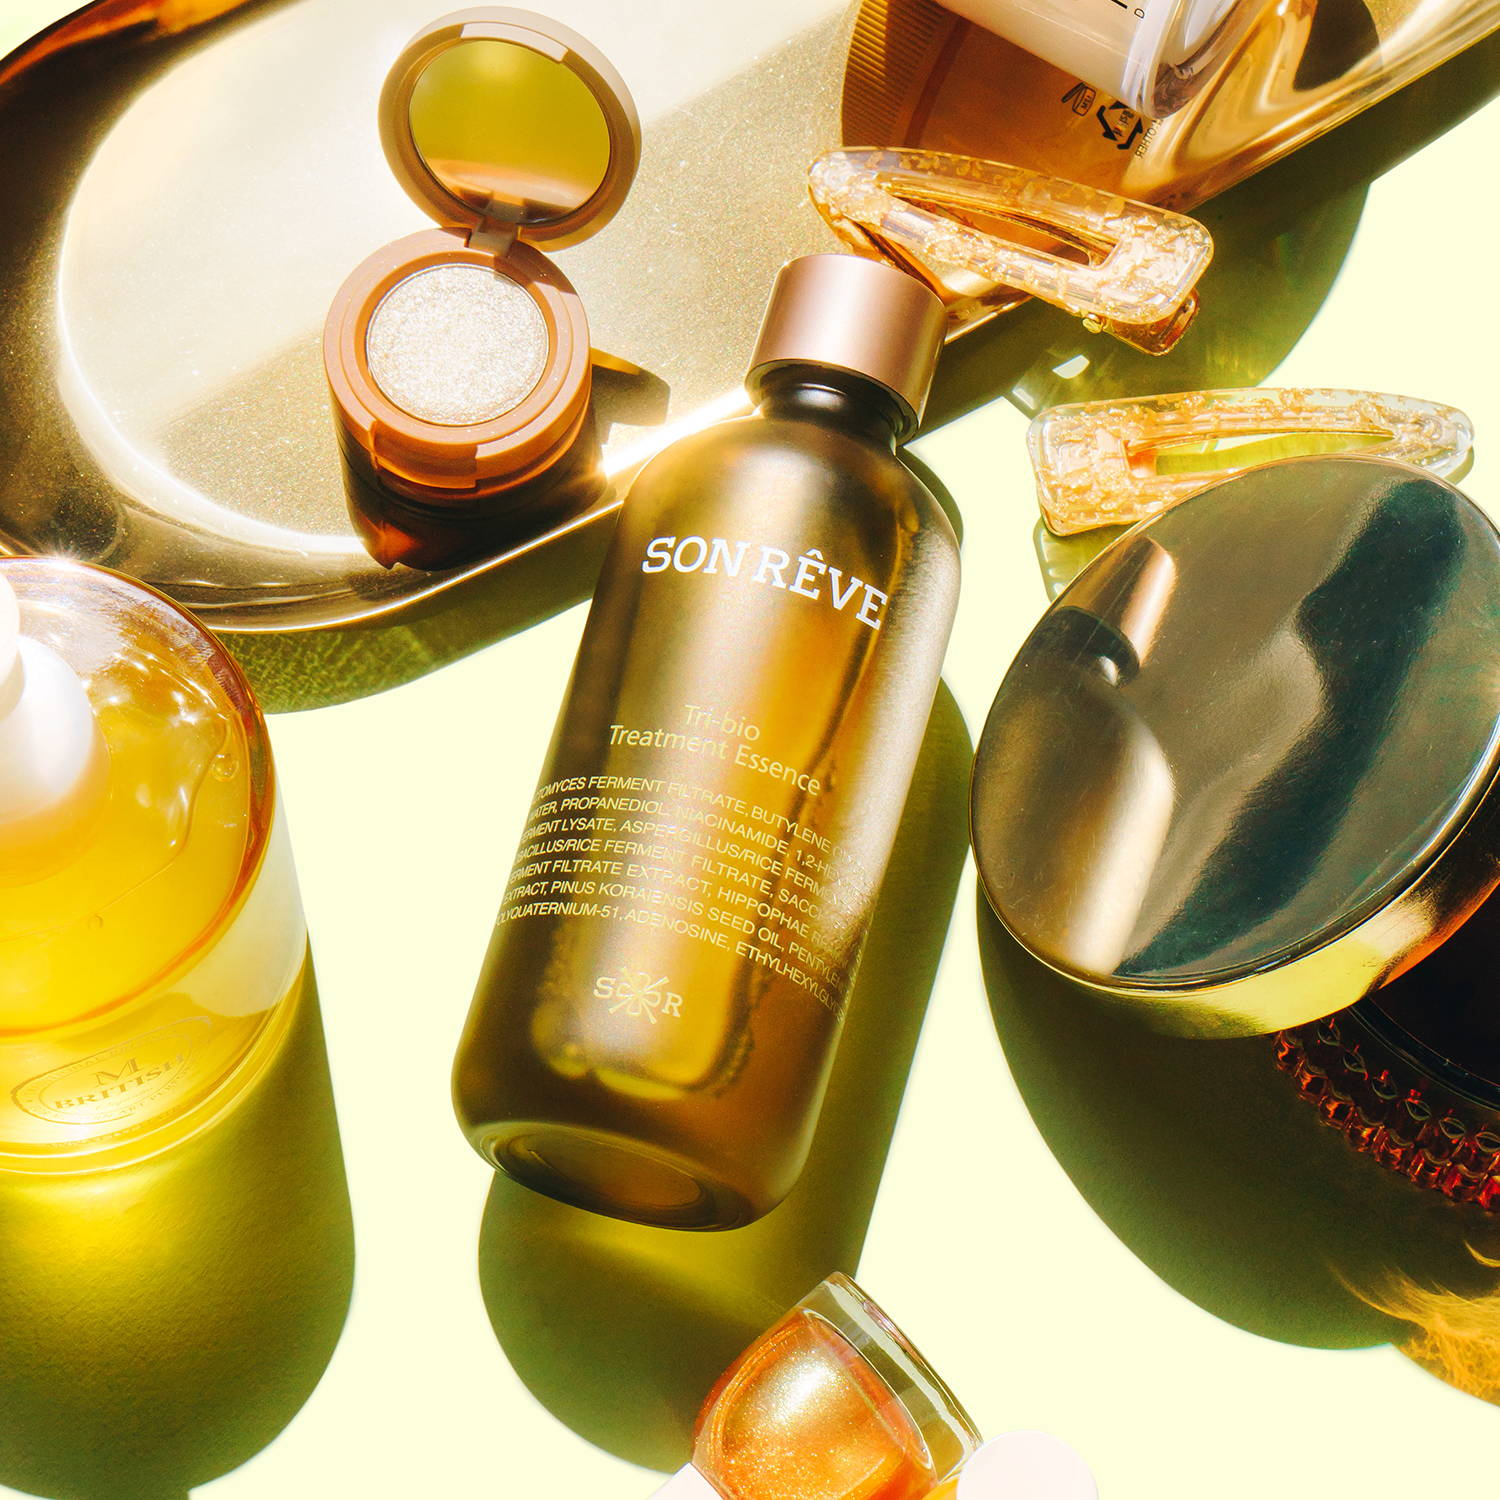 Son Reve Products